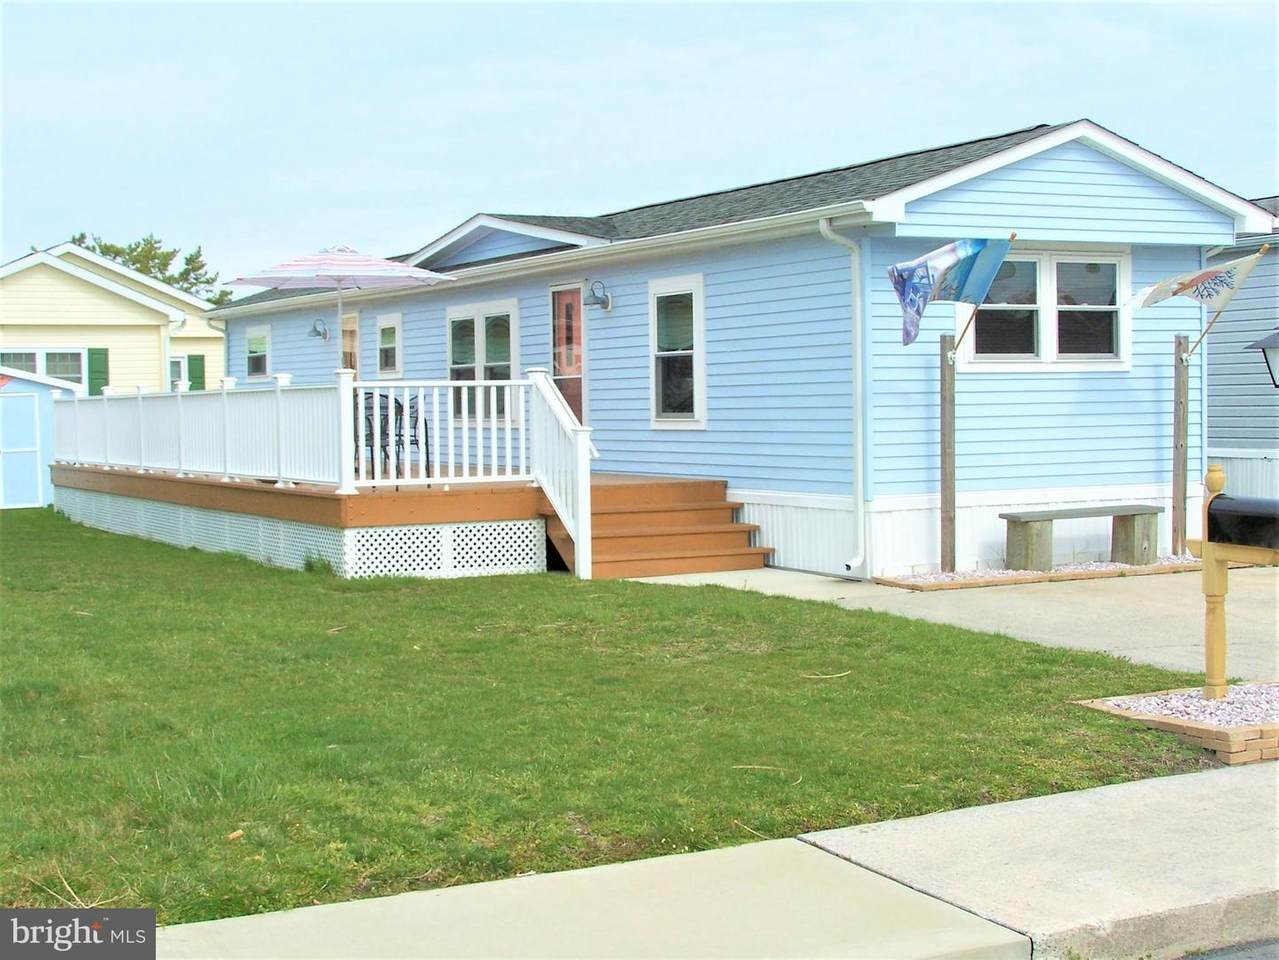 158 Clam Shell Road - Photo 1